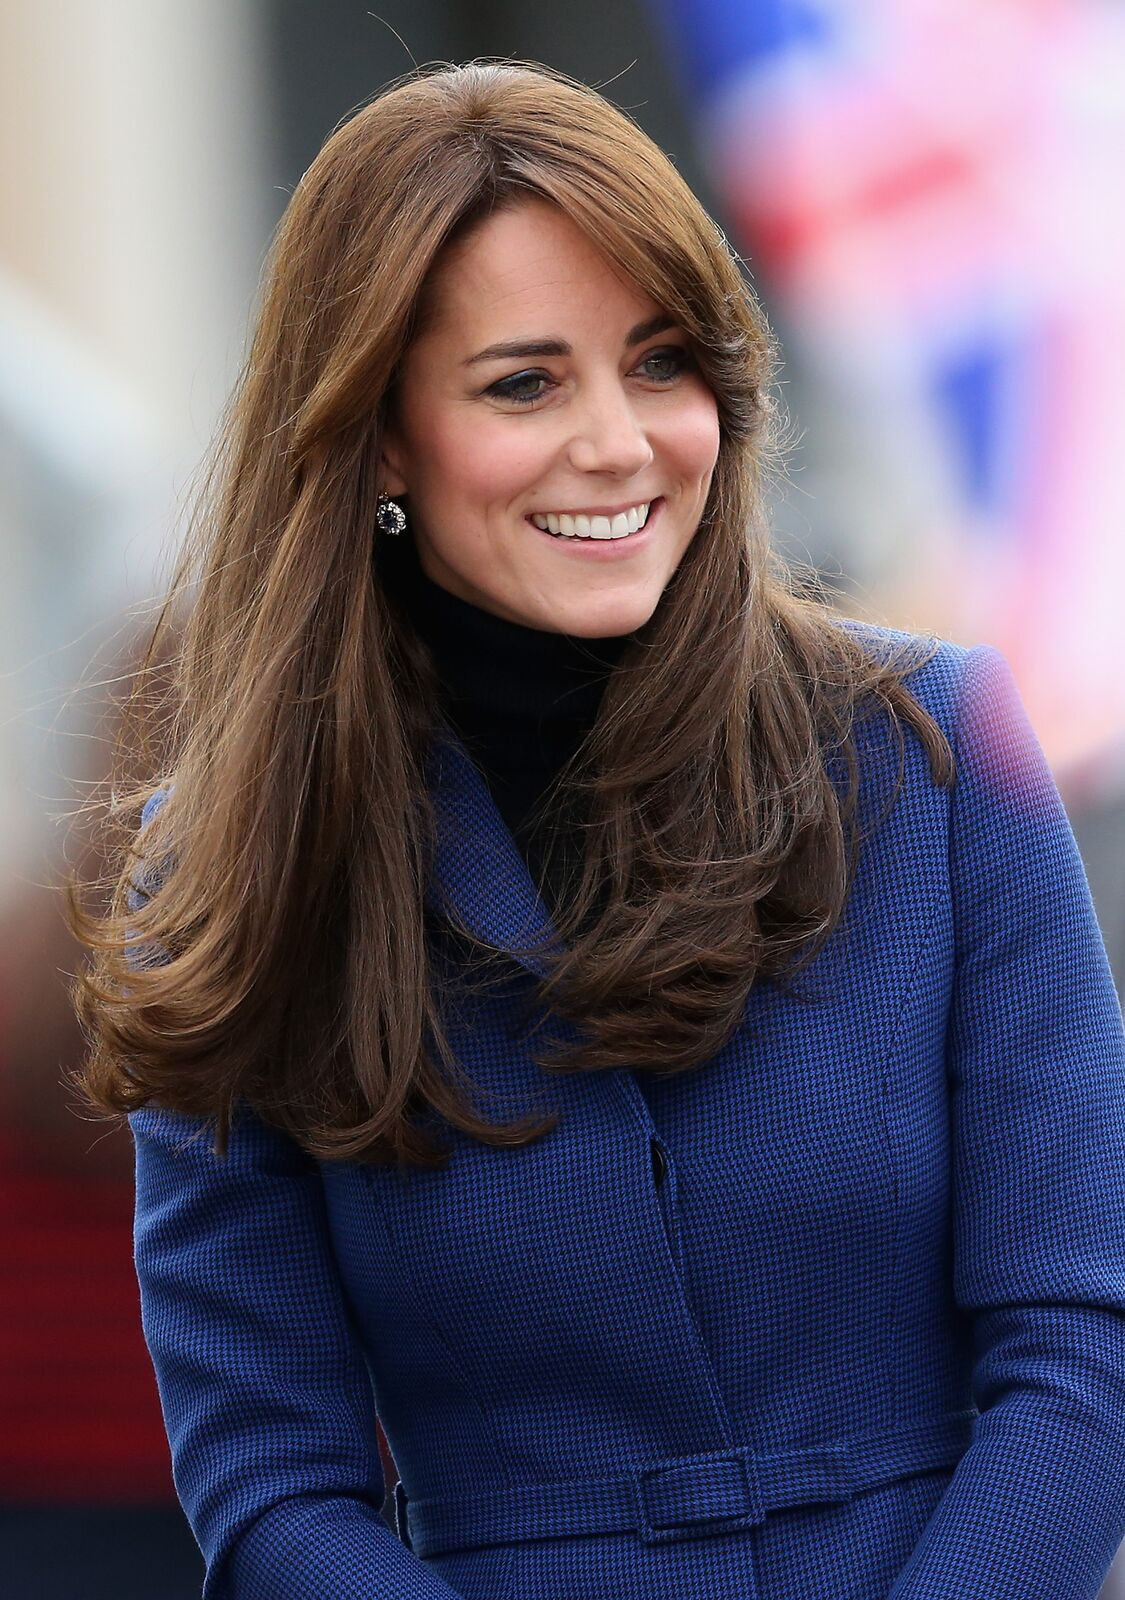 La duchesse de Cambridge Kate Middleton | Photo : Getty Images